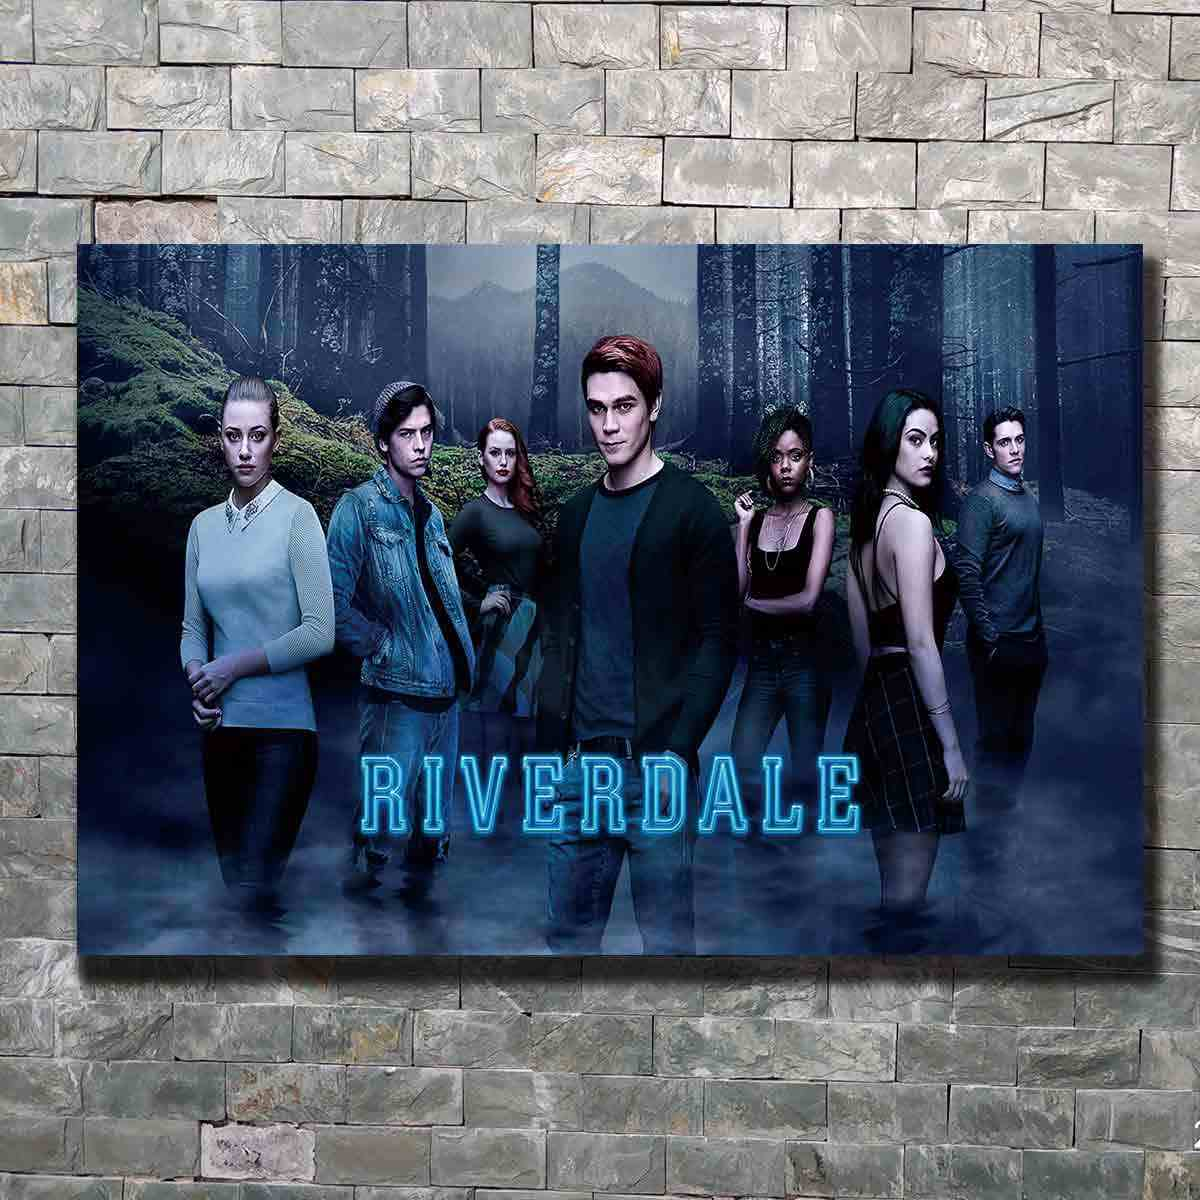 Art Poster Riverdale KJ Apa Crime Mystery USA Wall Canvas Print Modern painting Home Decor picture 14x21 12x18 24x36 27x40